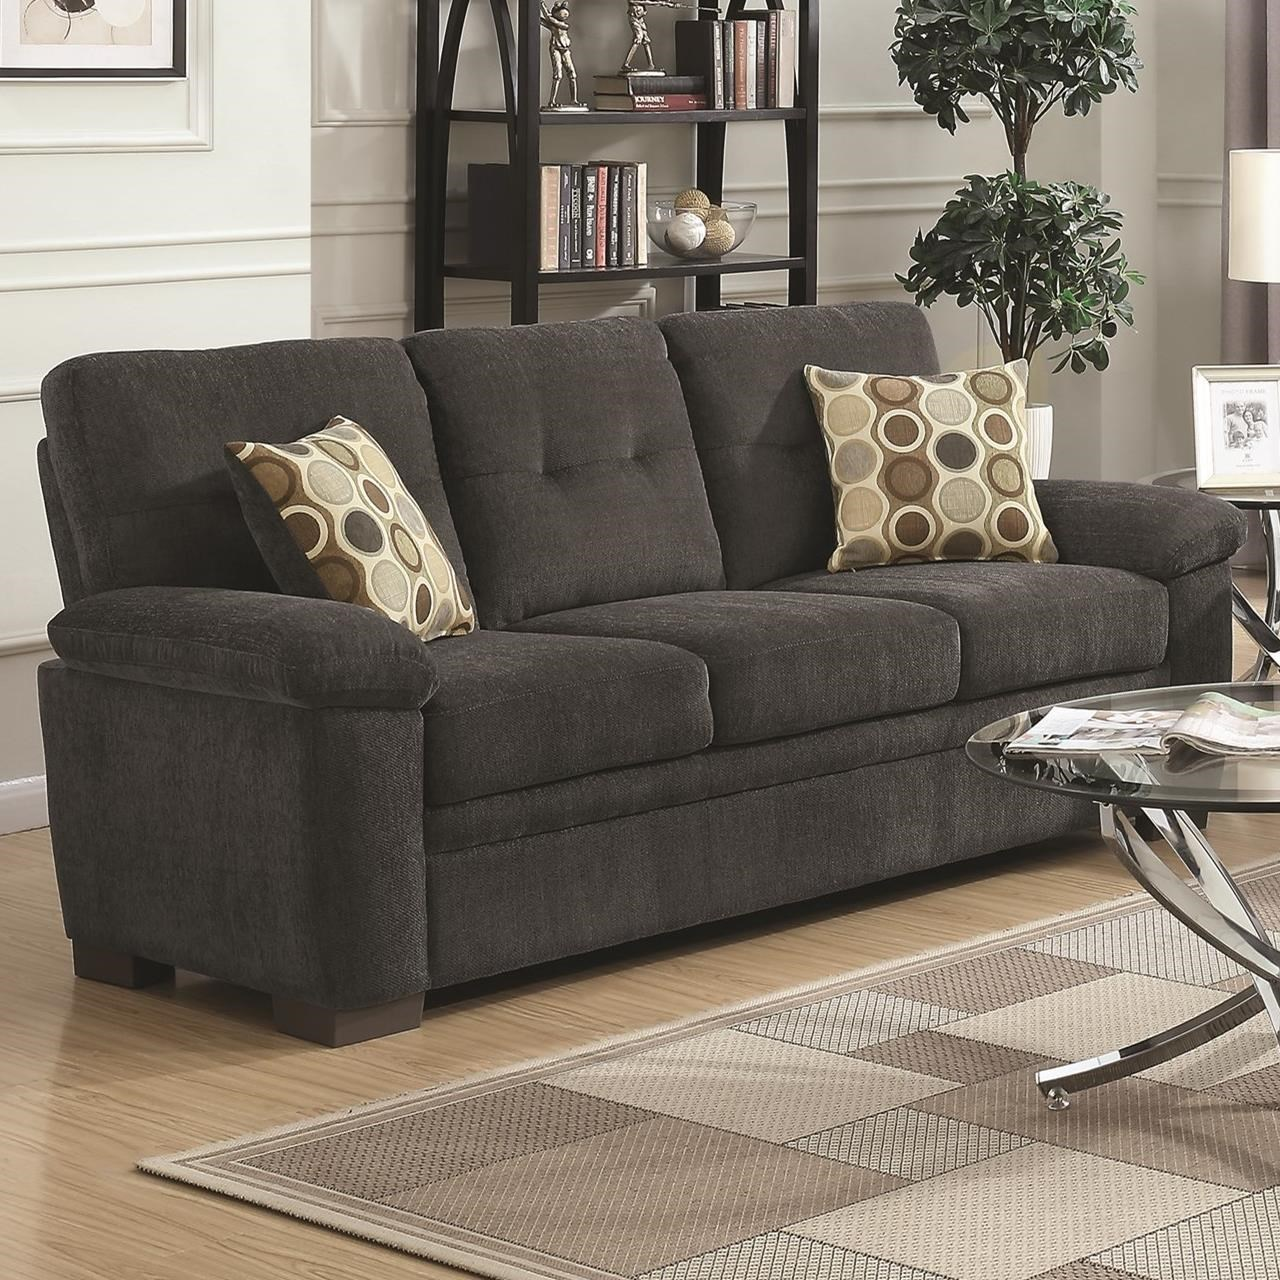 Fairbairn Sofa by Coaster at Northeast Factory Direct